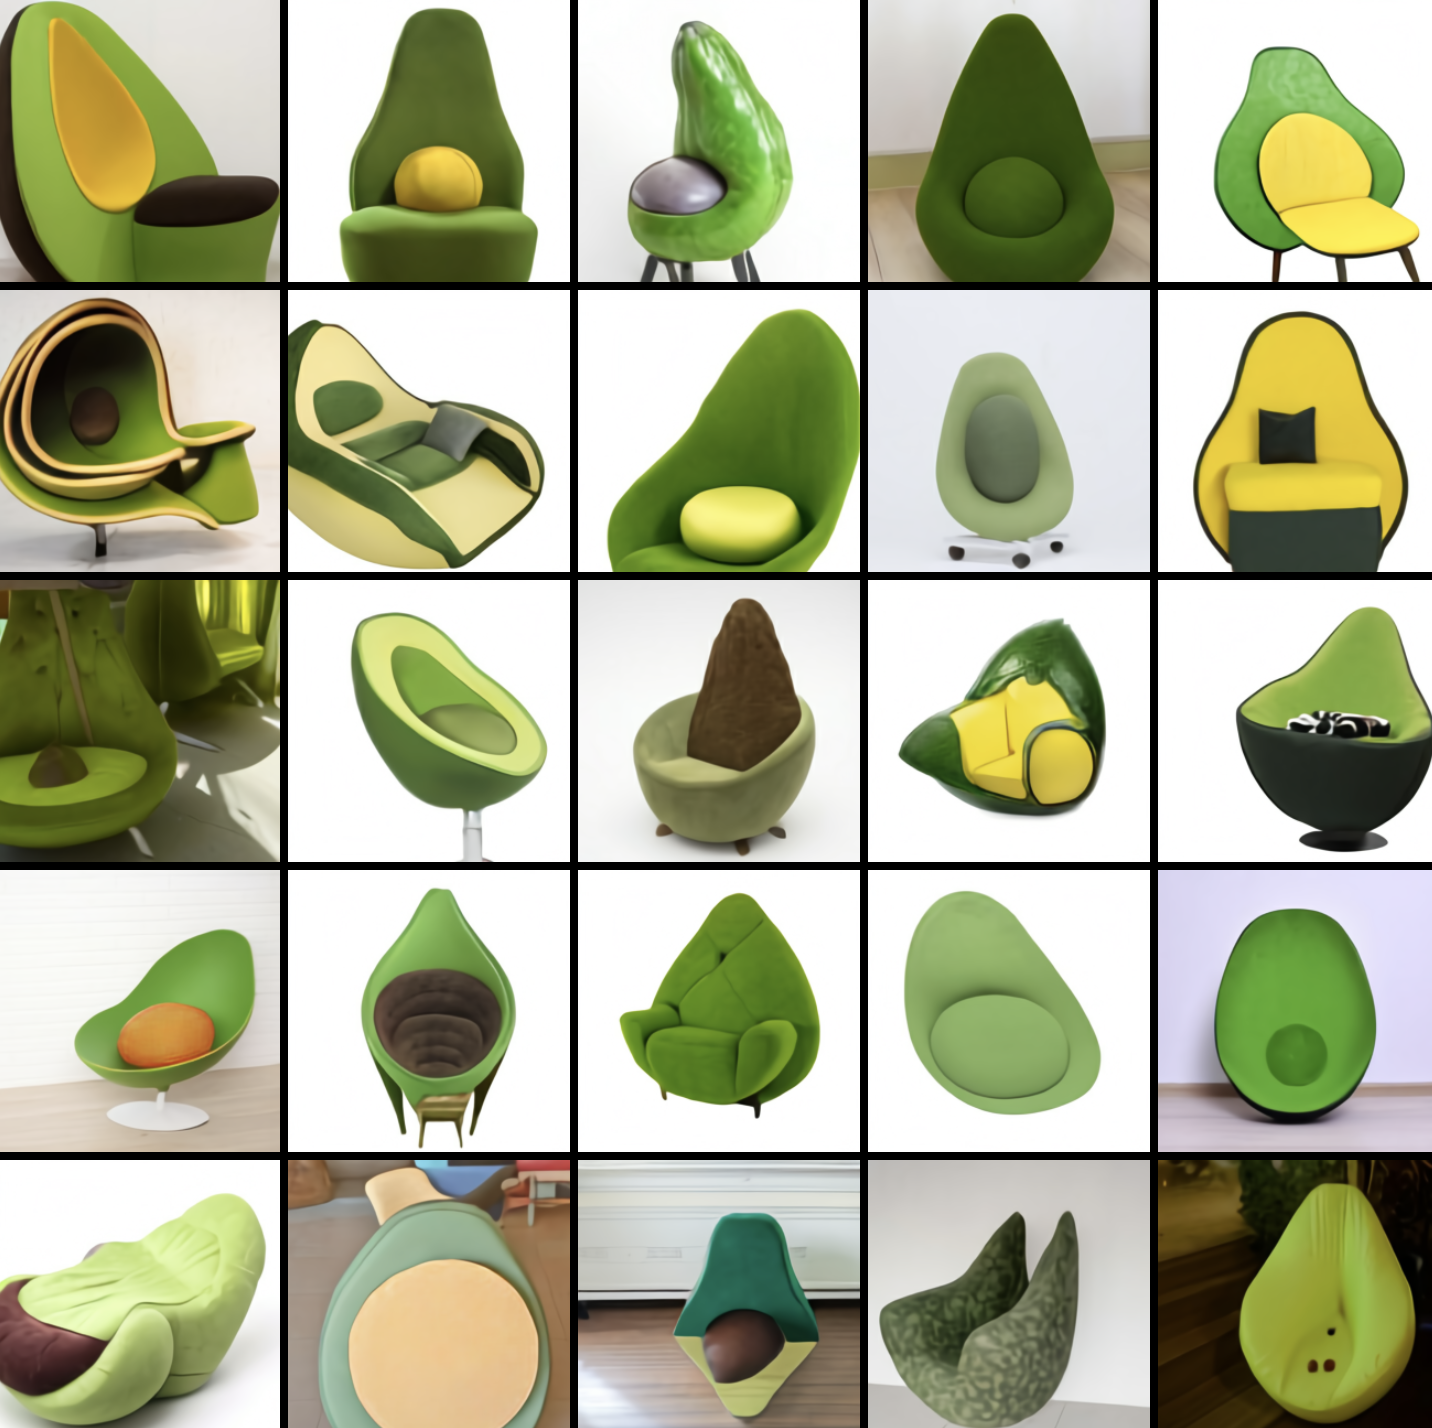 Generated images of avocado chairs